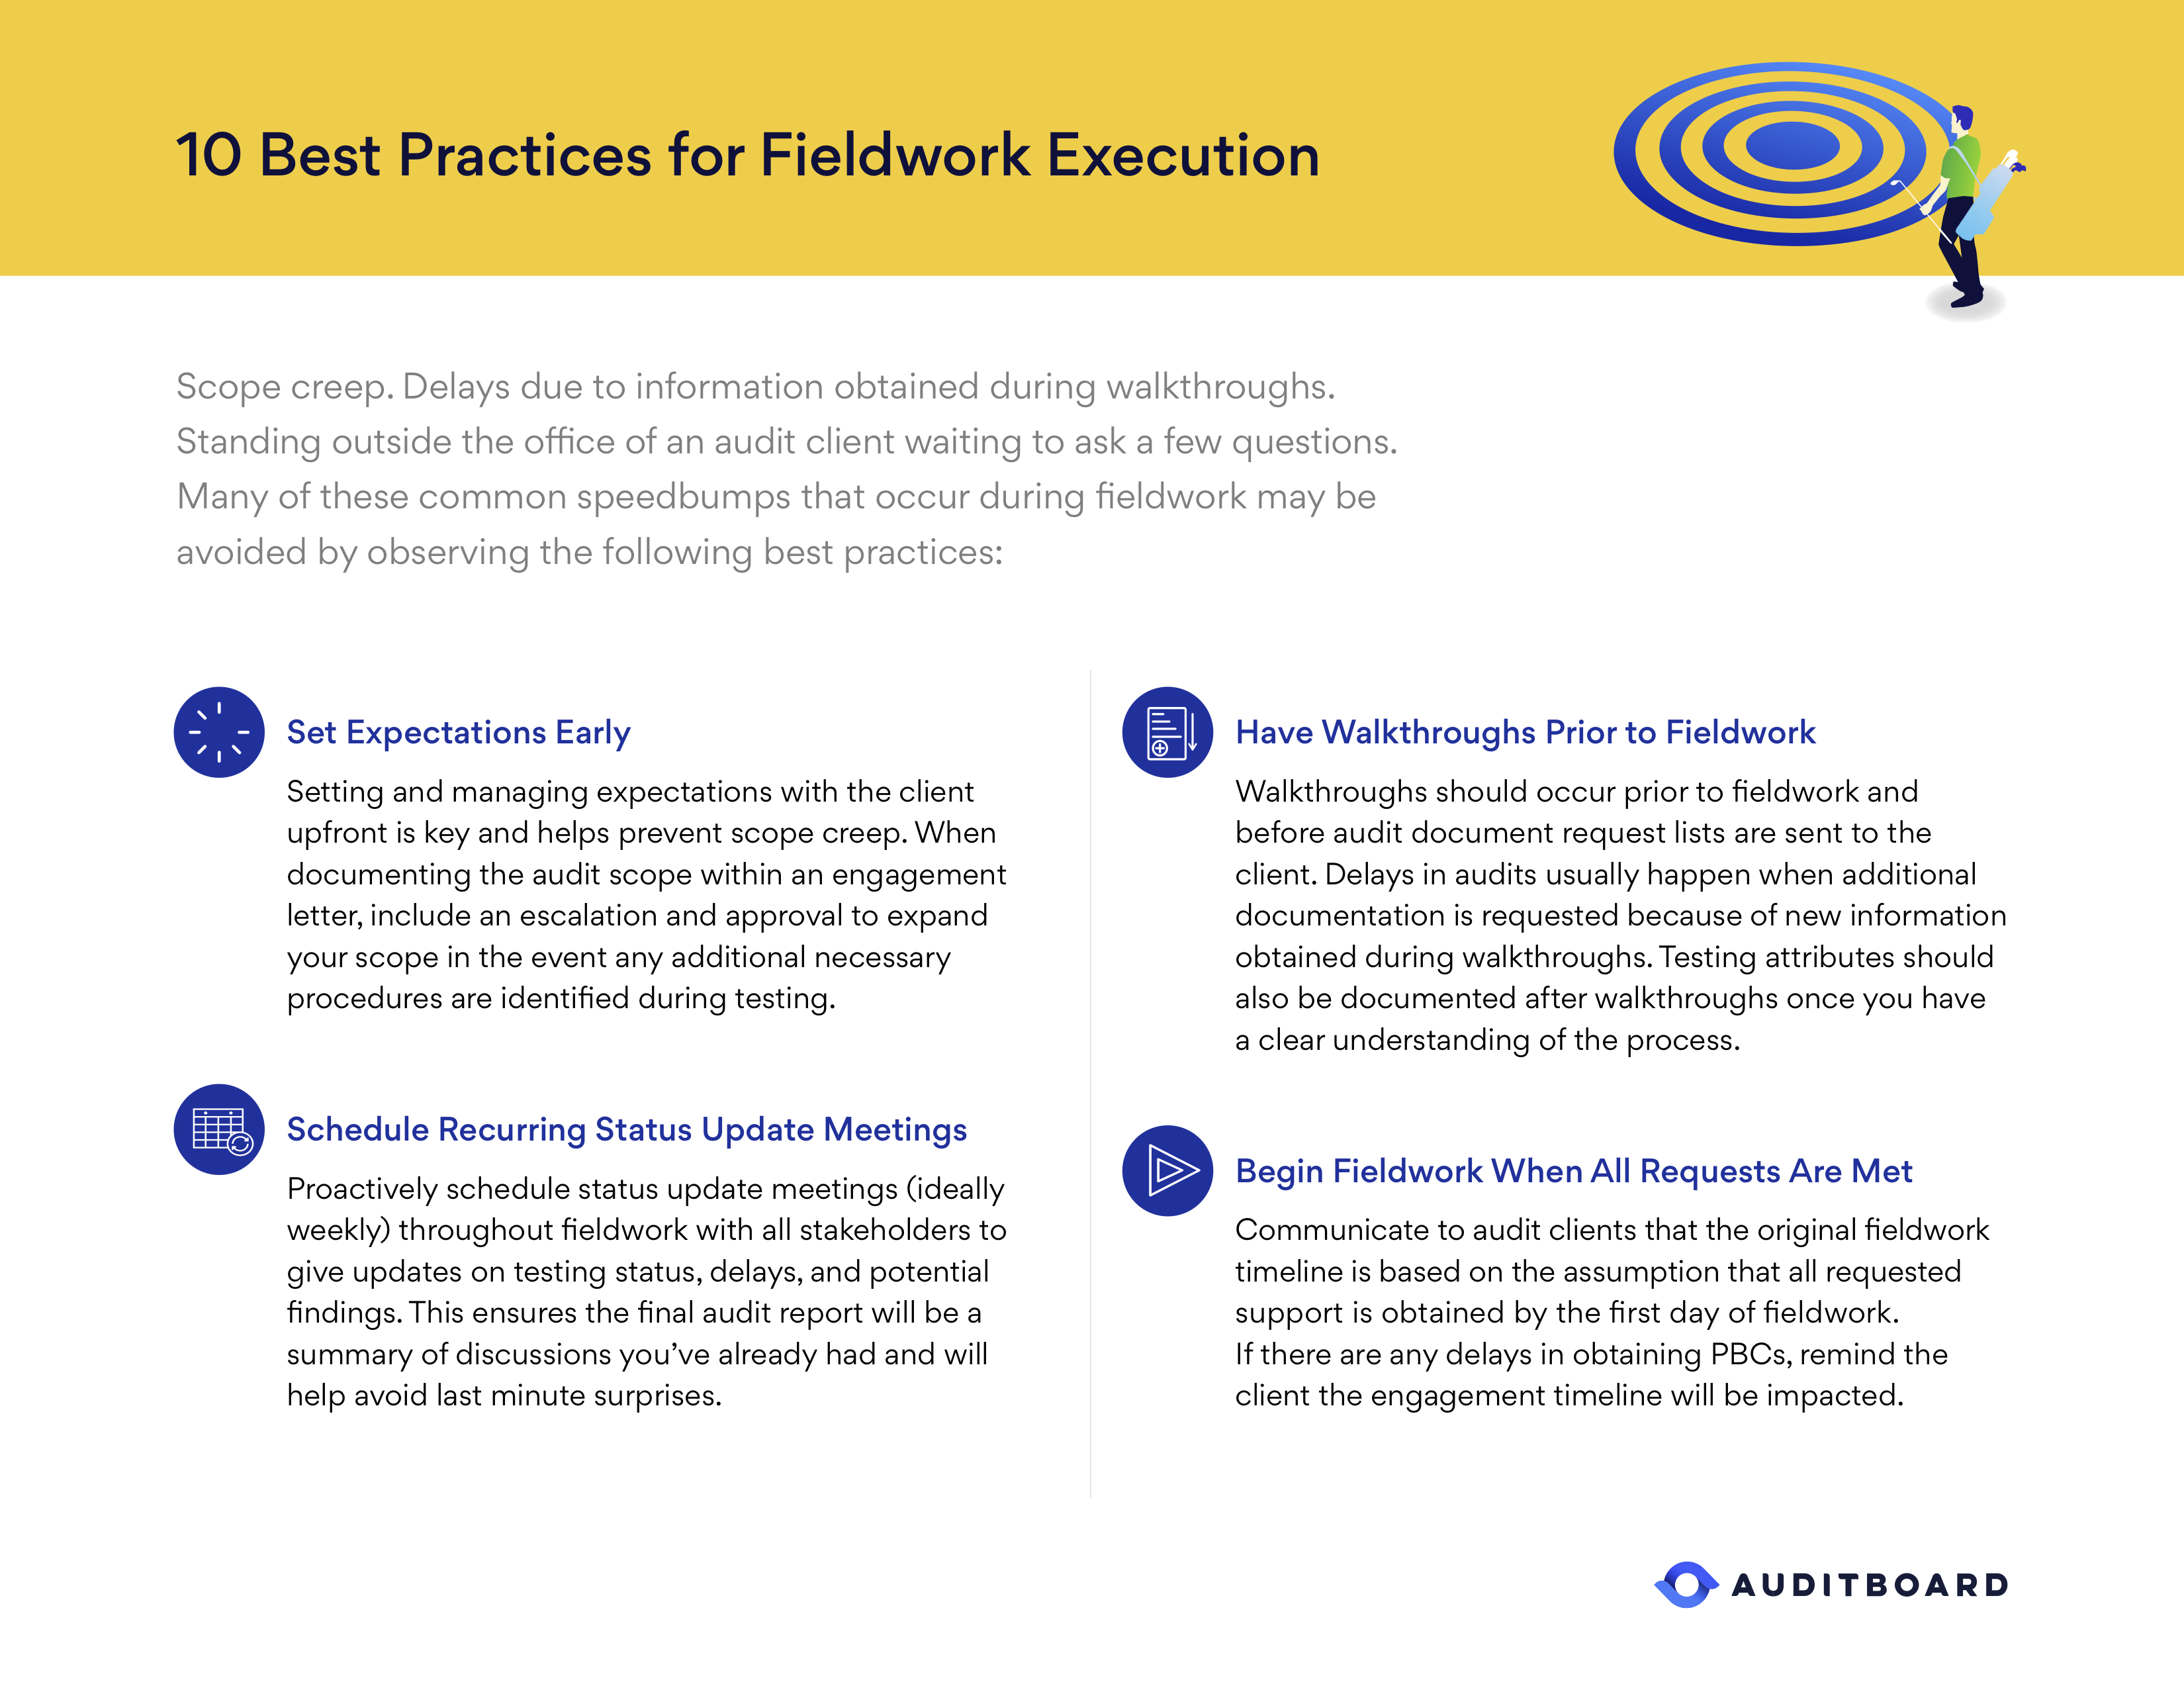 10 Best Practices for Fieldwork Execution